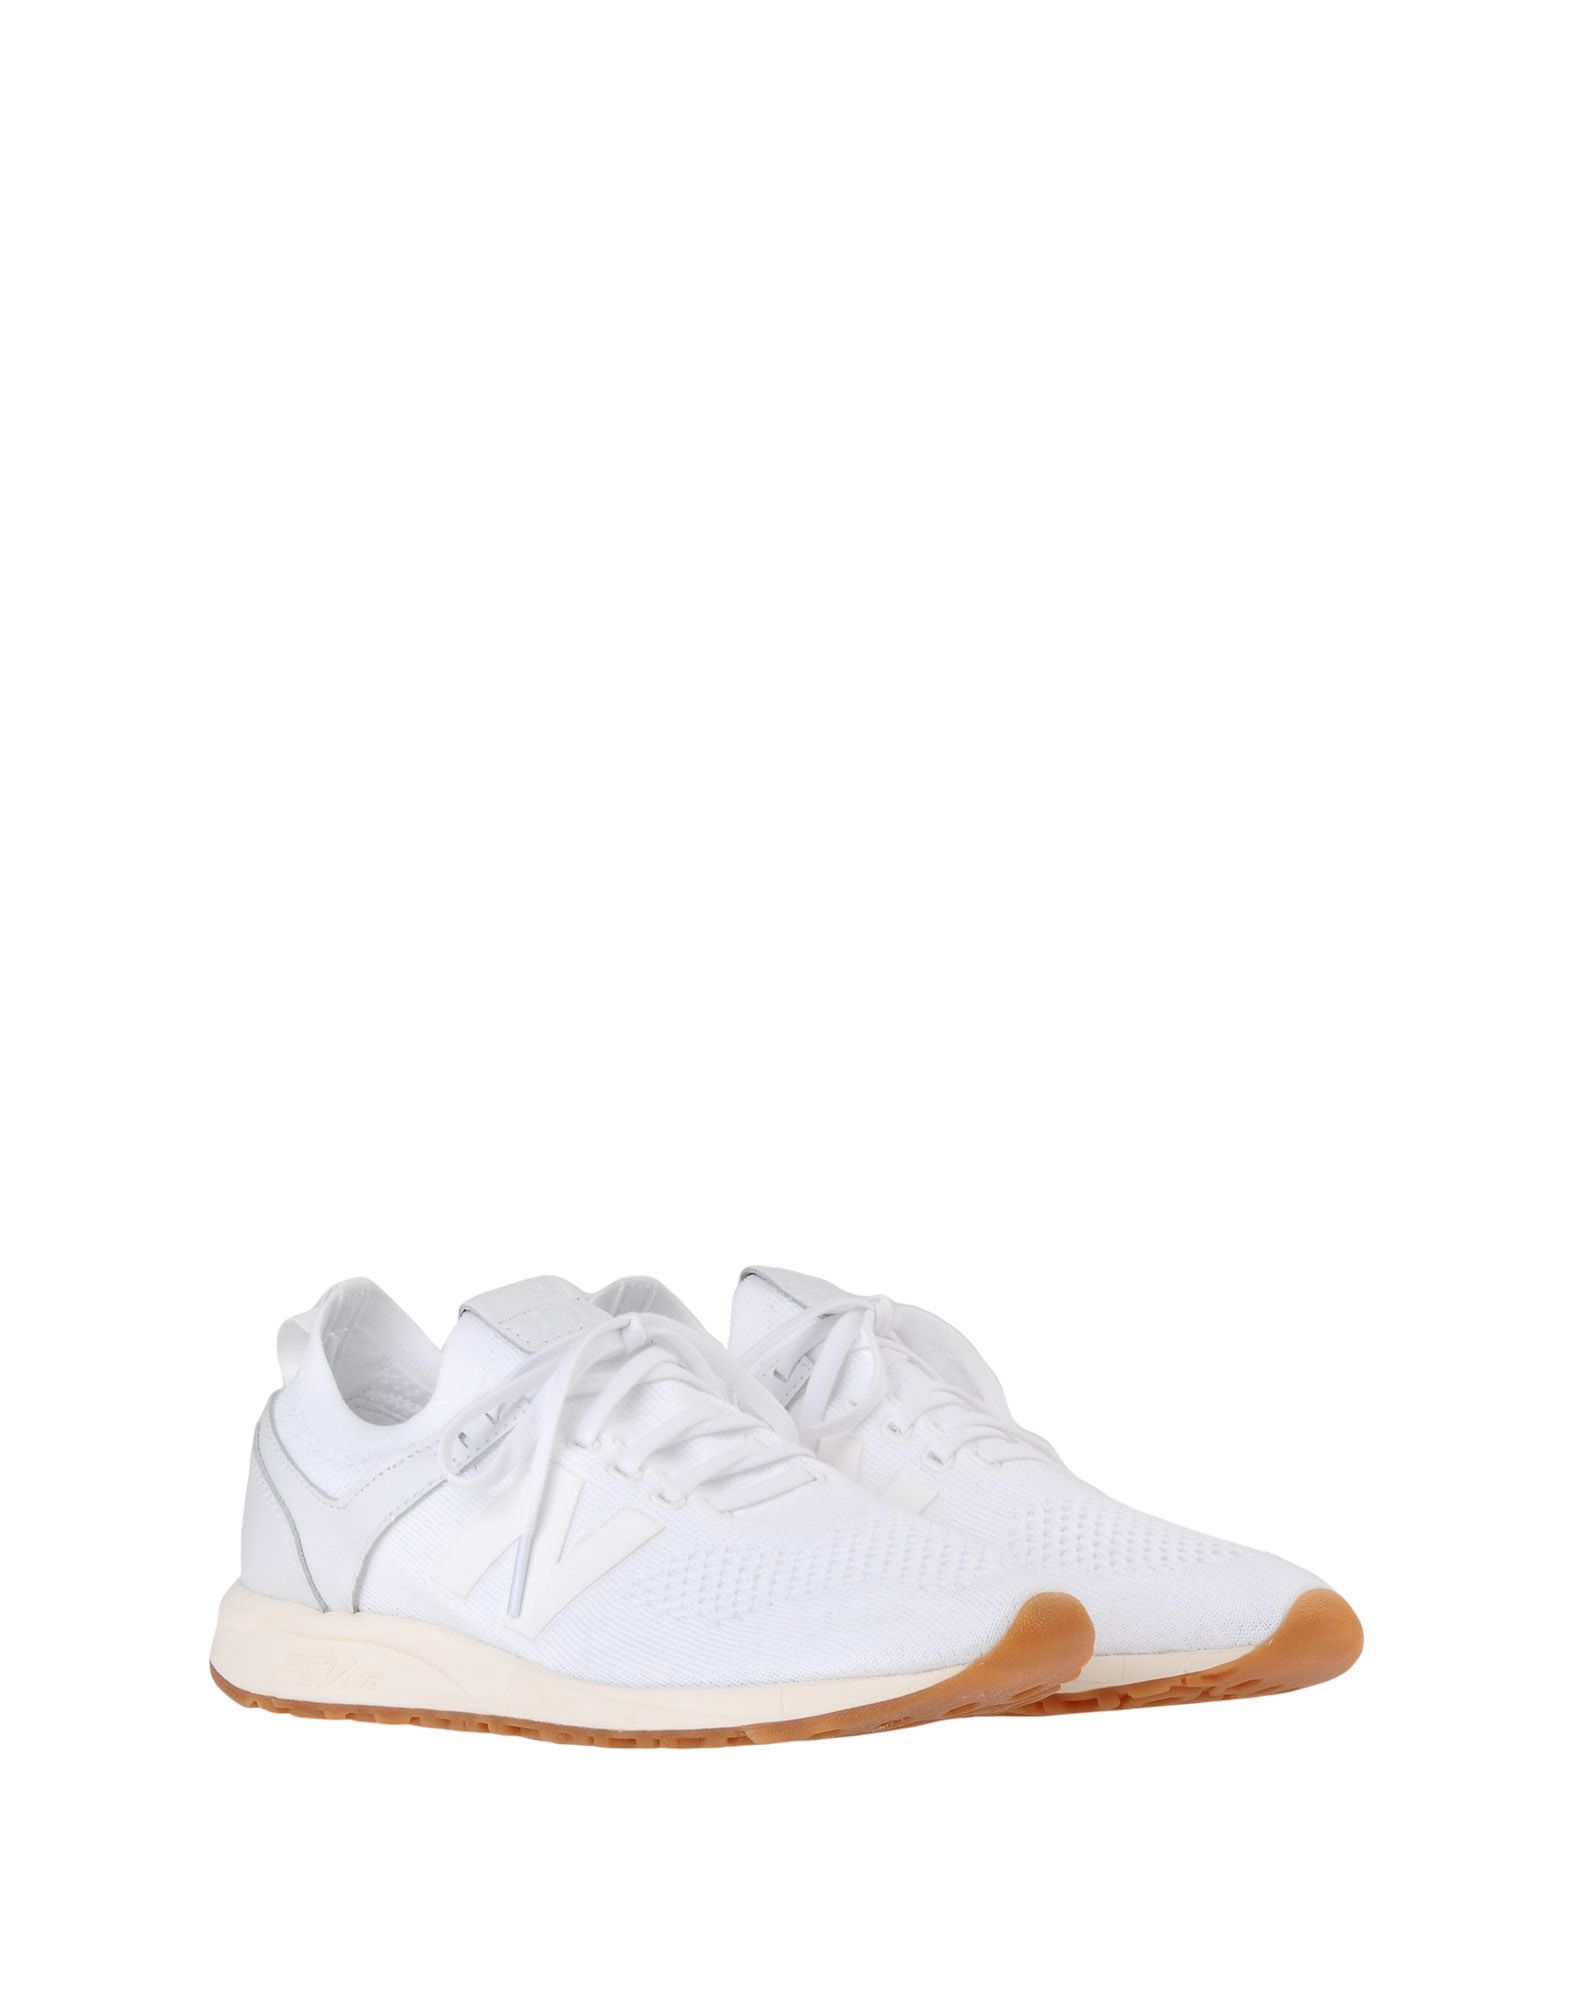 Sneakers New Balance 247 Deconstructed Knit - Femme - Sneakers New Balance sur